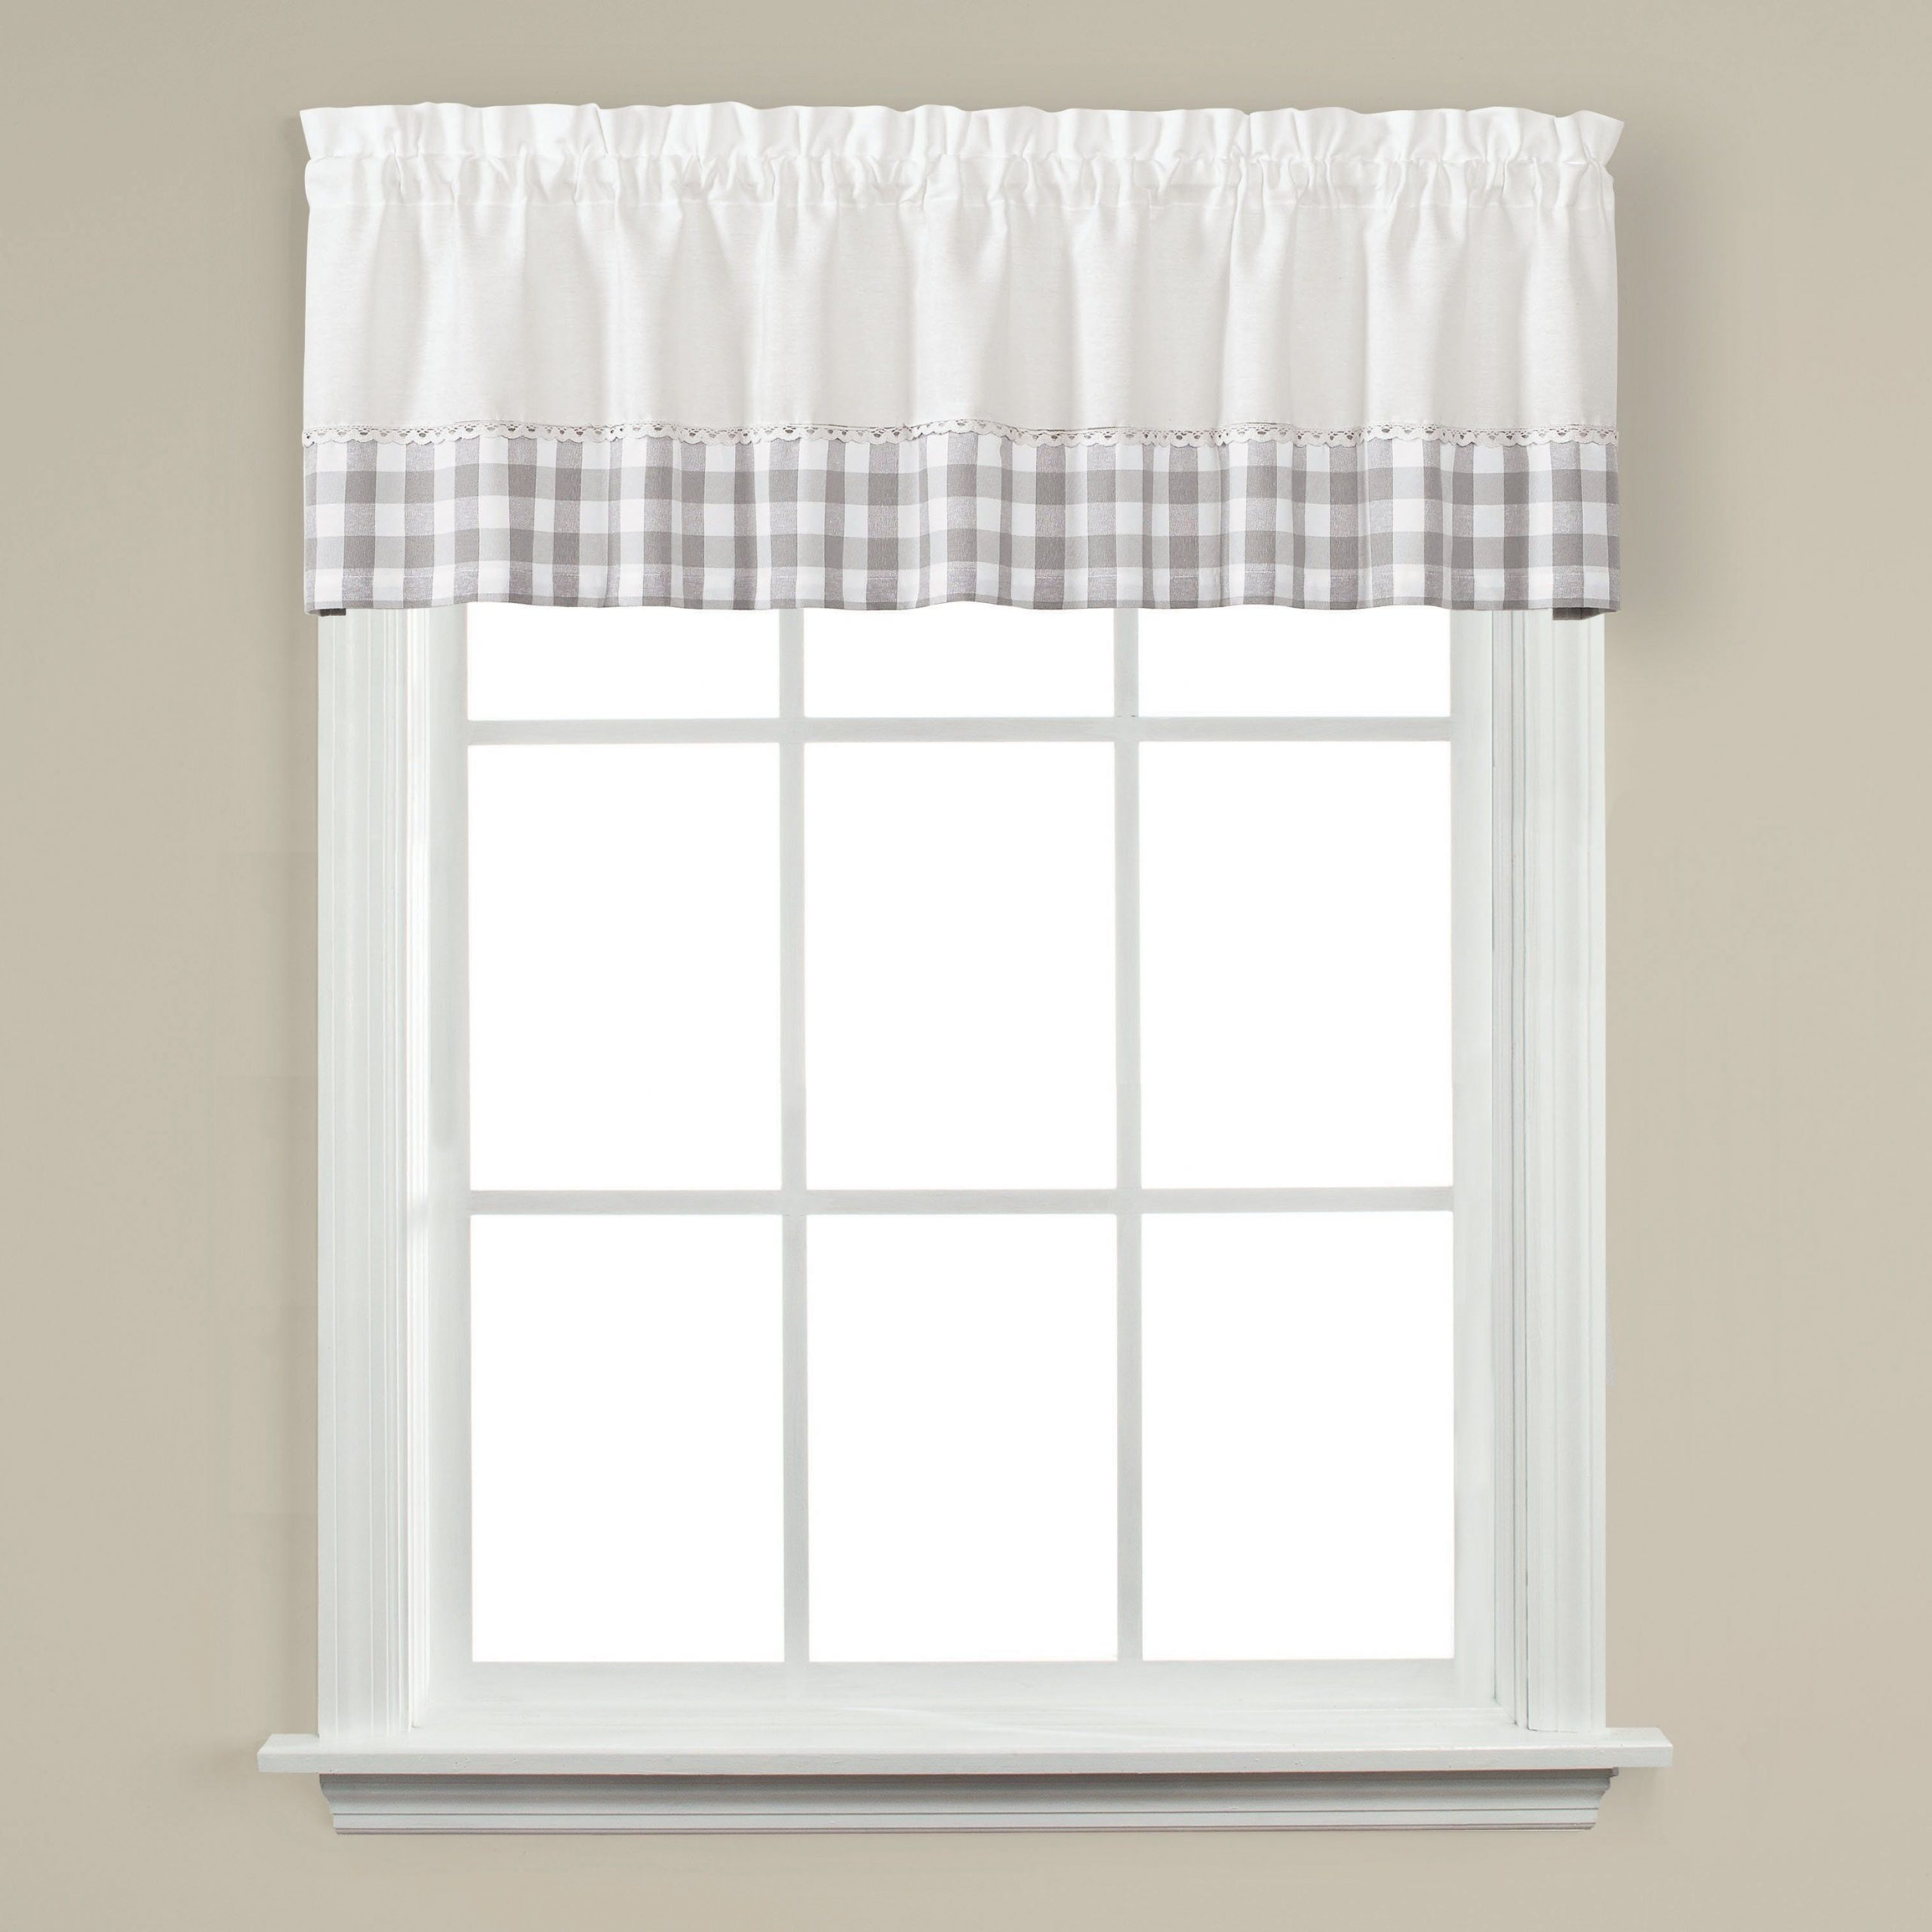 Dove Gray Curtain Tier Pairs For Well Known Skl Home Cumberland 13 Inch Valance In Dove Gray, Grey (View 15 of 20)